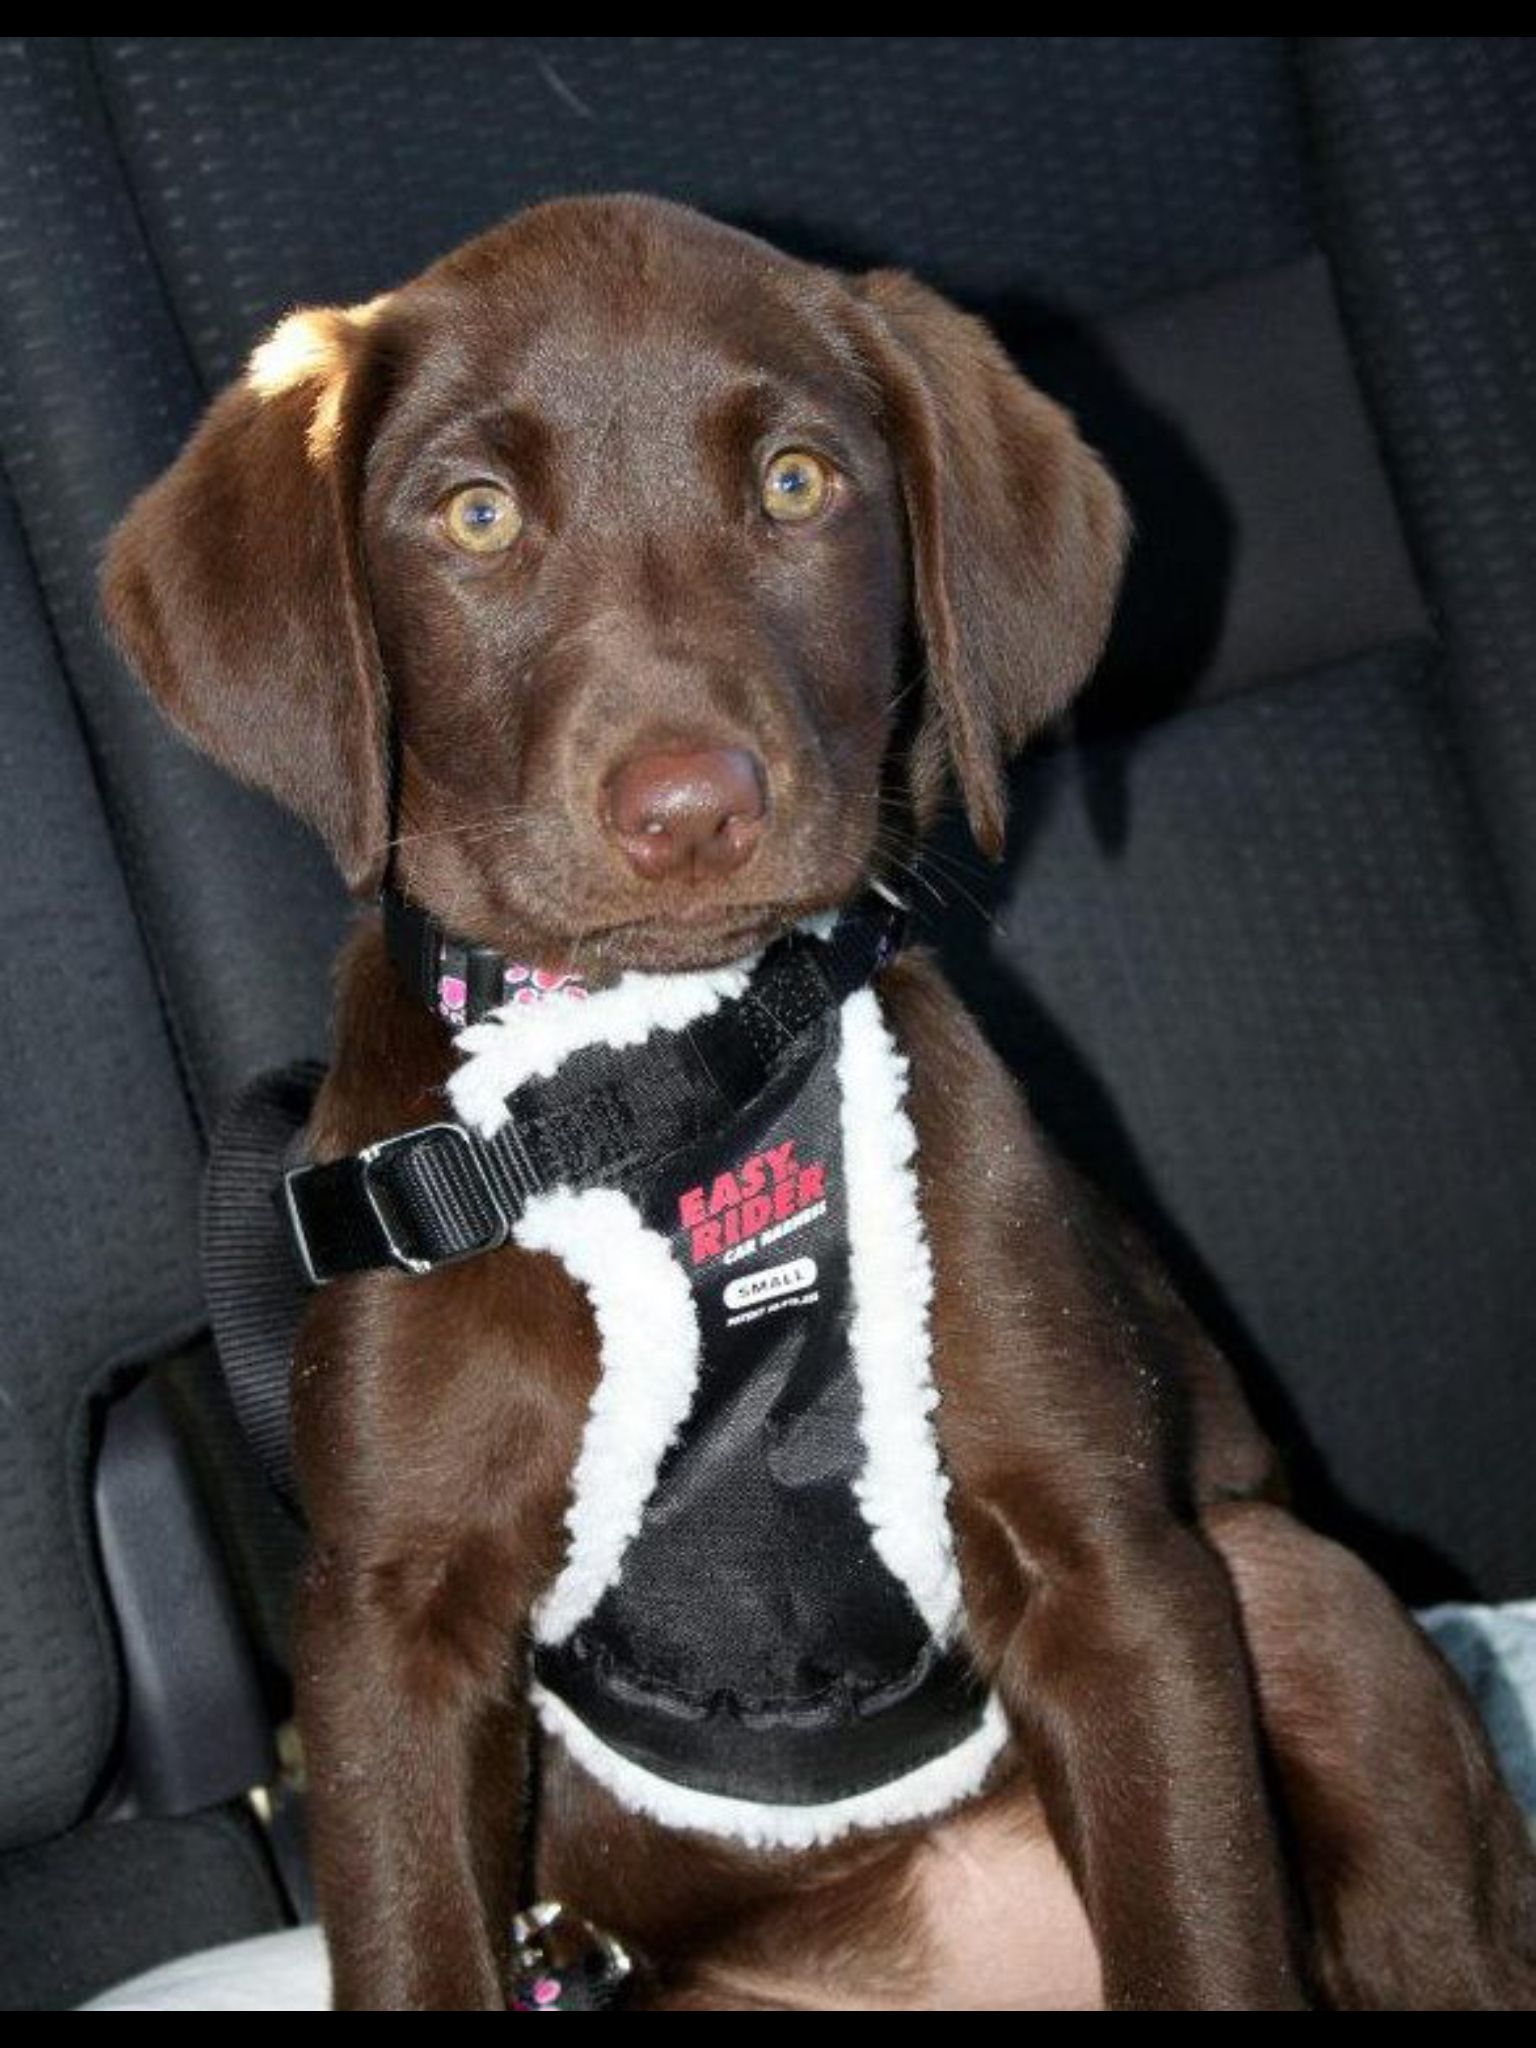 Chocolate lab puppy, Reese......first car ride!